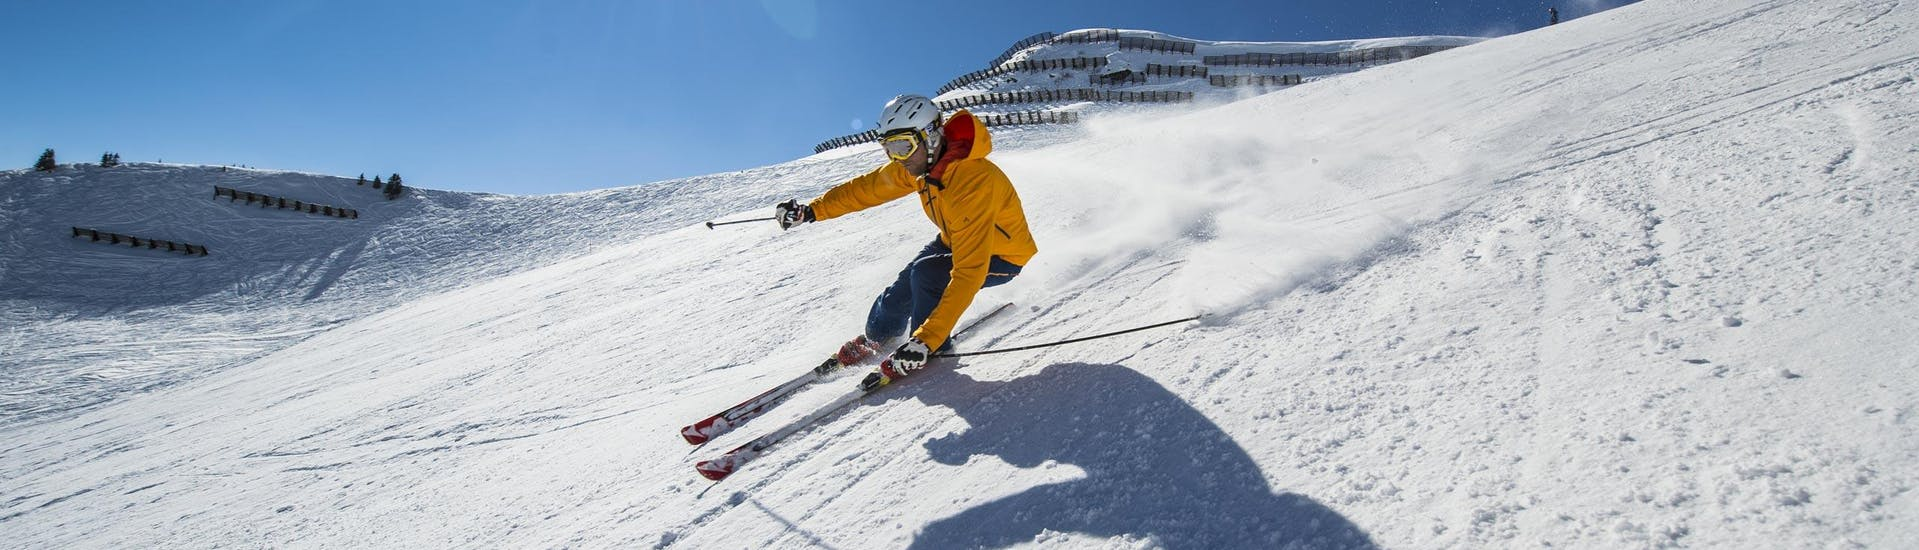 Private skiing lessons on the slope: A skier is skiing down a sunny ski slope while participating in an activity offered by Marlen Roffler.